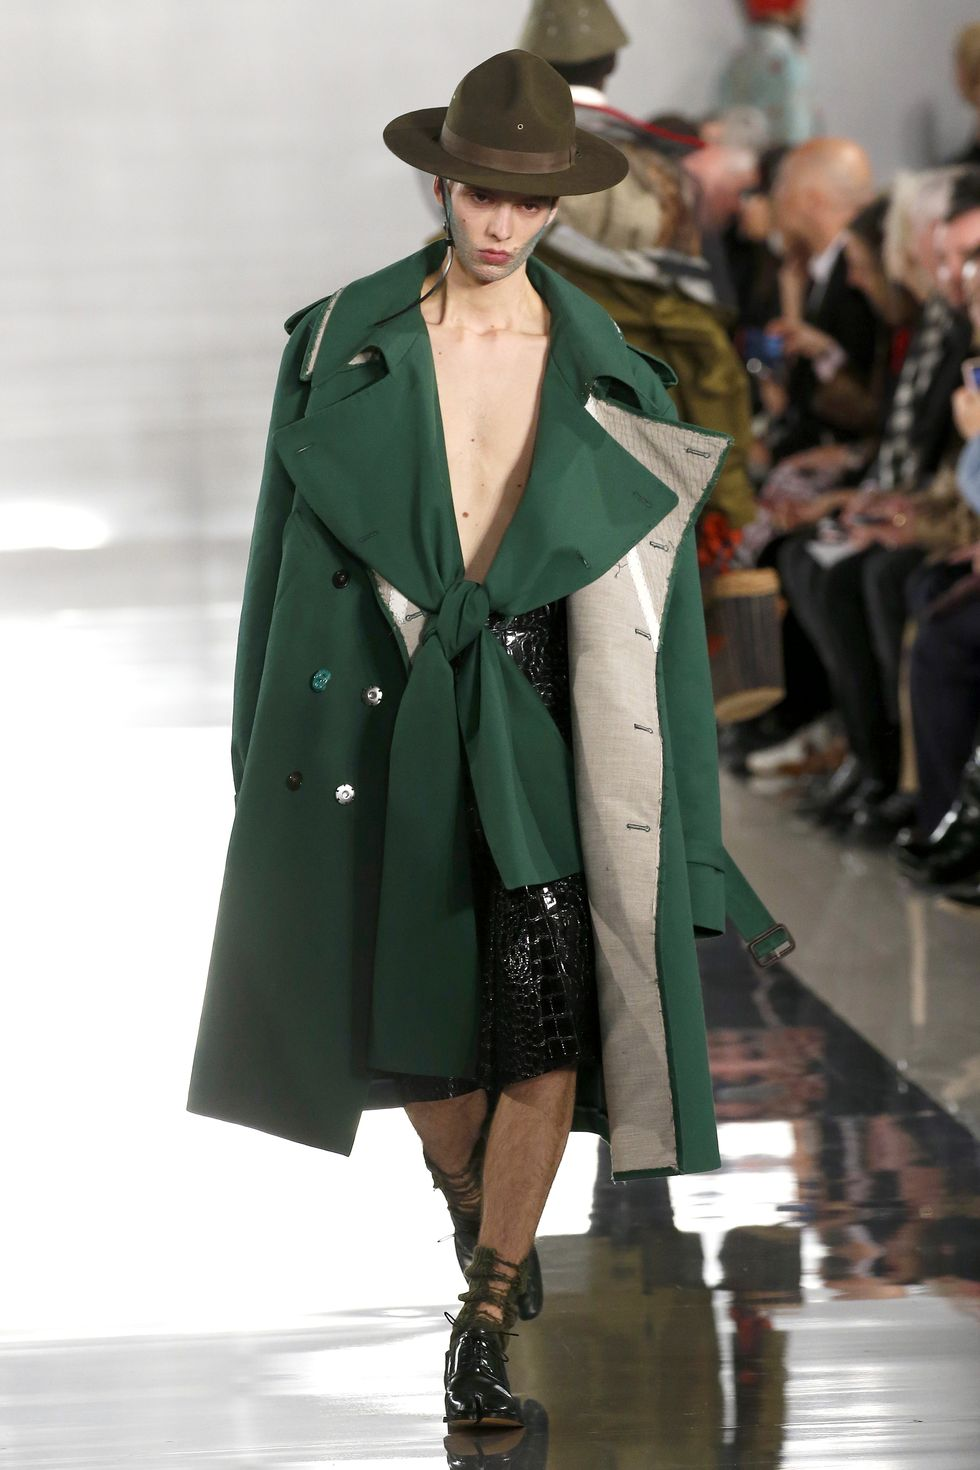 Be Amazed By Paris Fashion Week 2020's Runway Looks paris fashion week 2020 Be Amazed By Paris Fashion Week 2020's Runway Looks gettyimages 1208803244